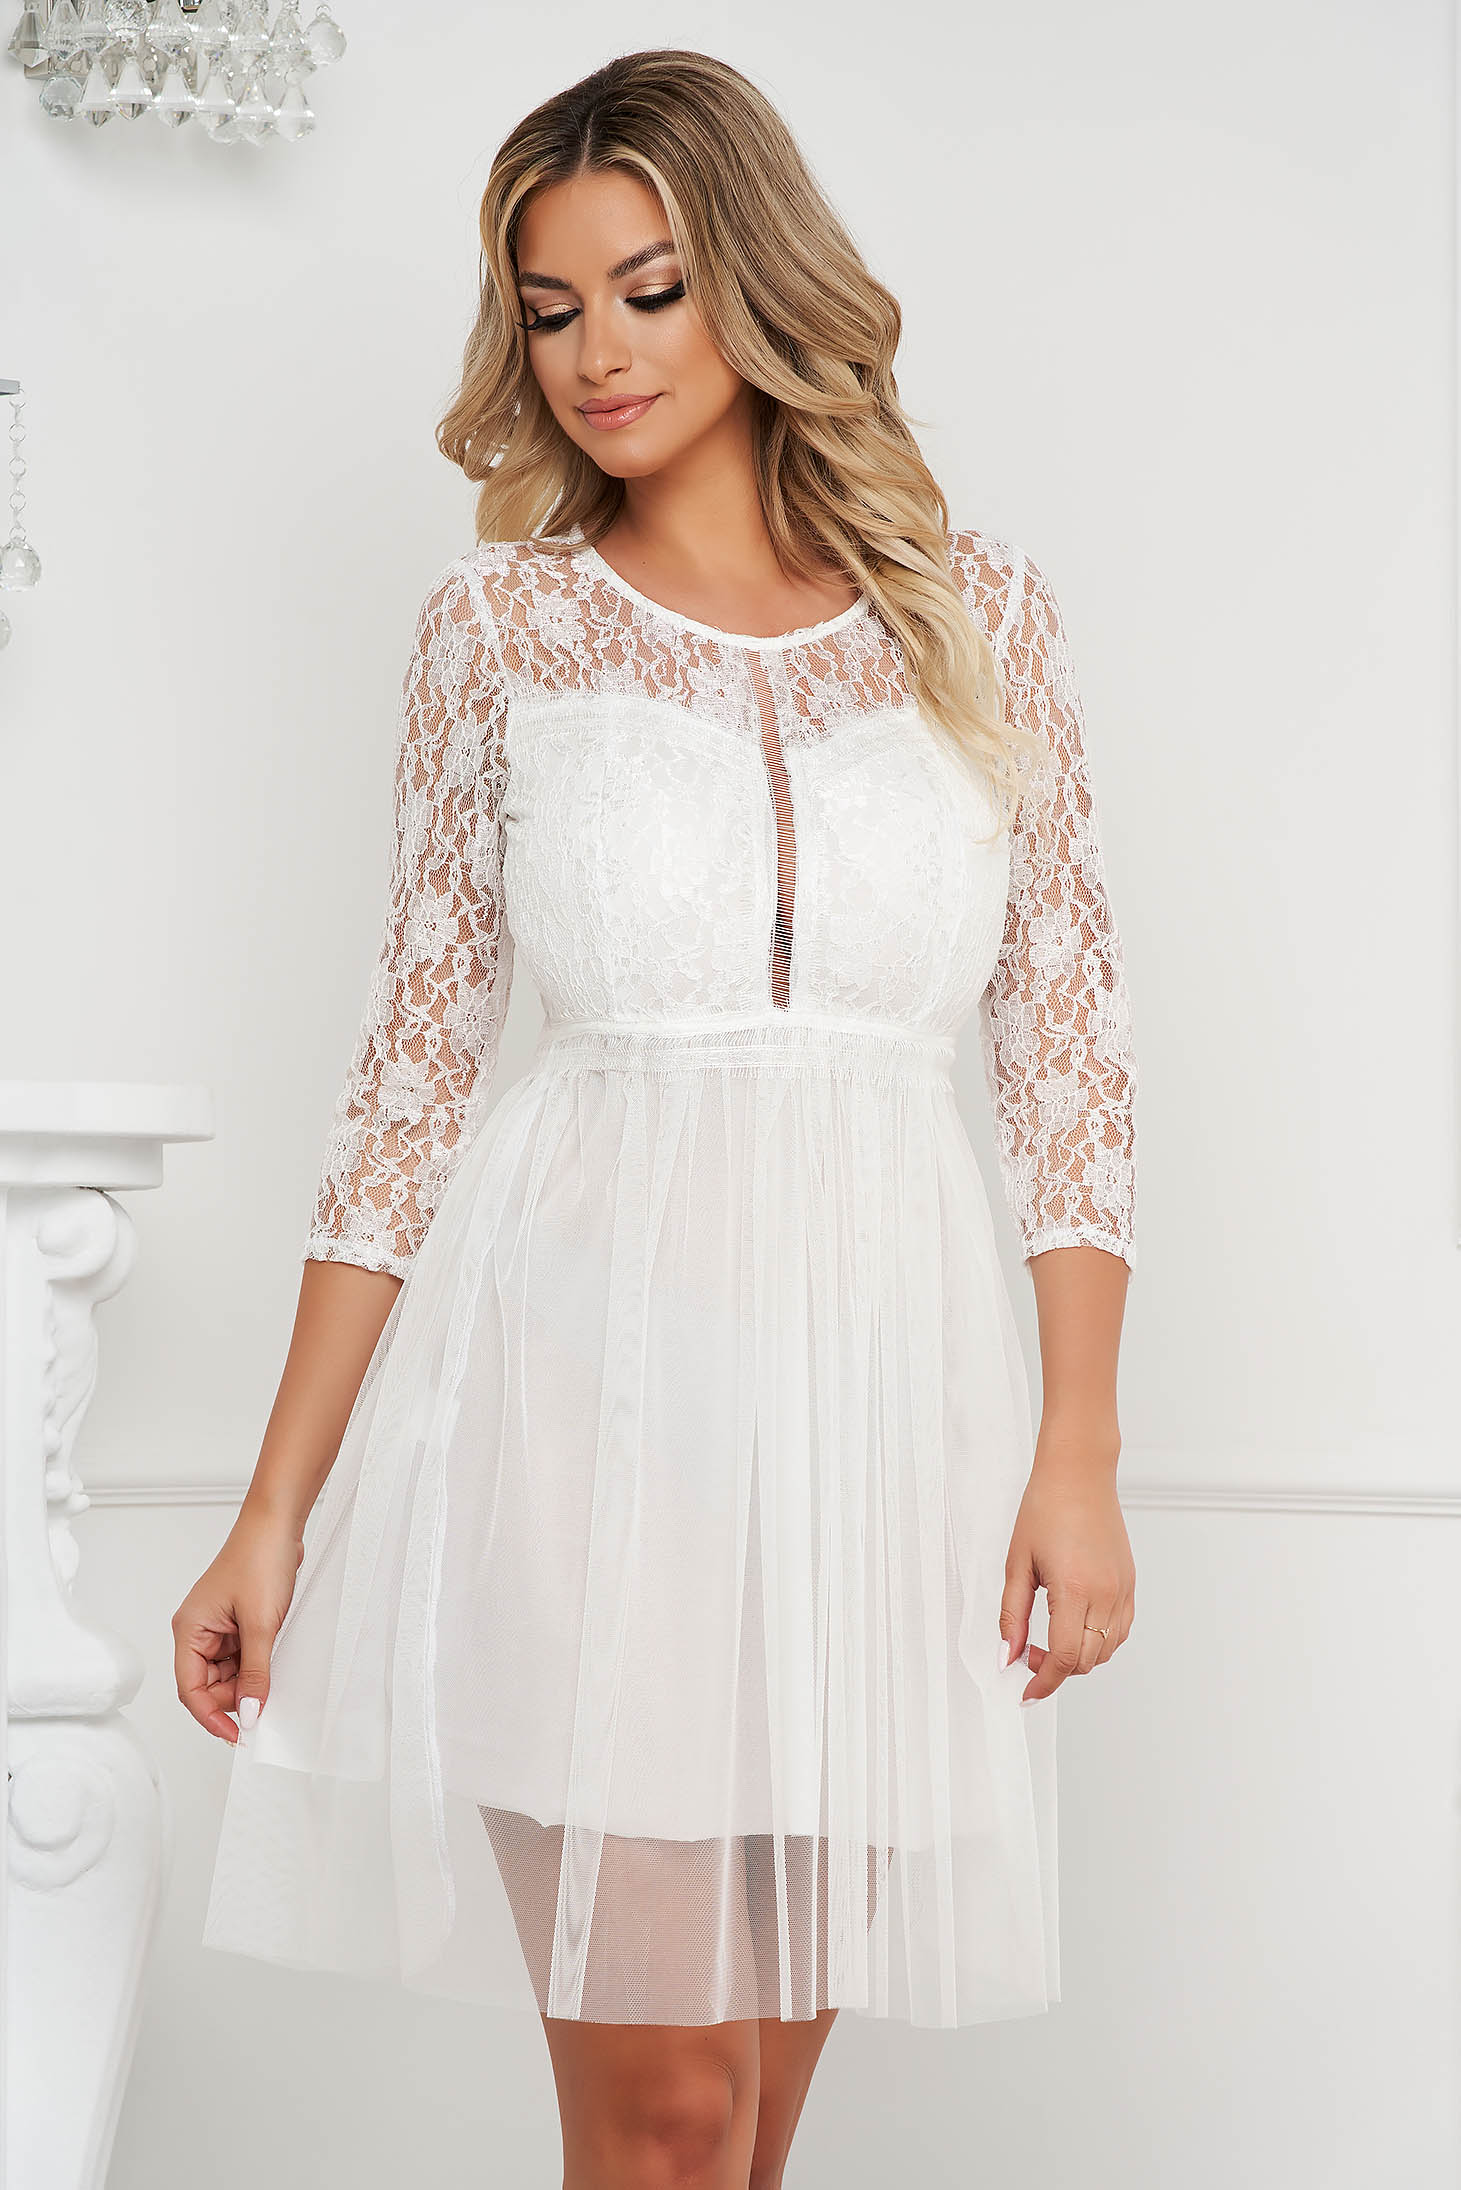 White dress short cut occasional cloche laced from tulle